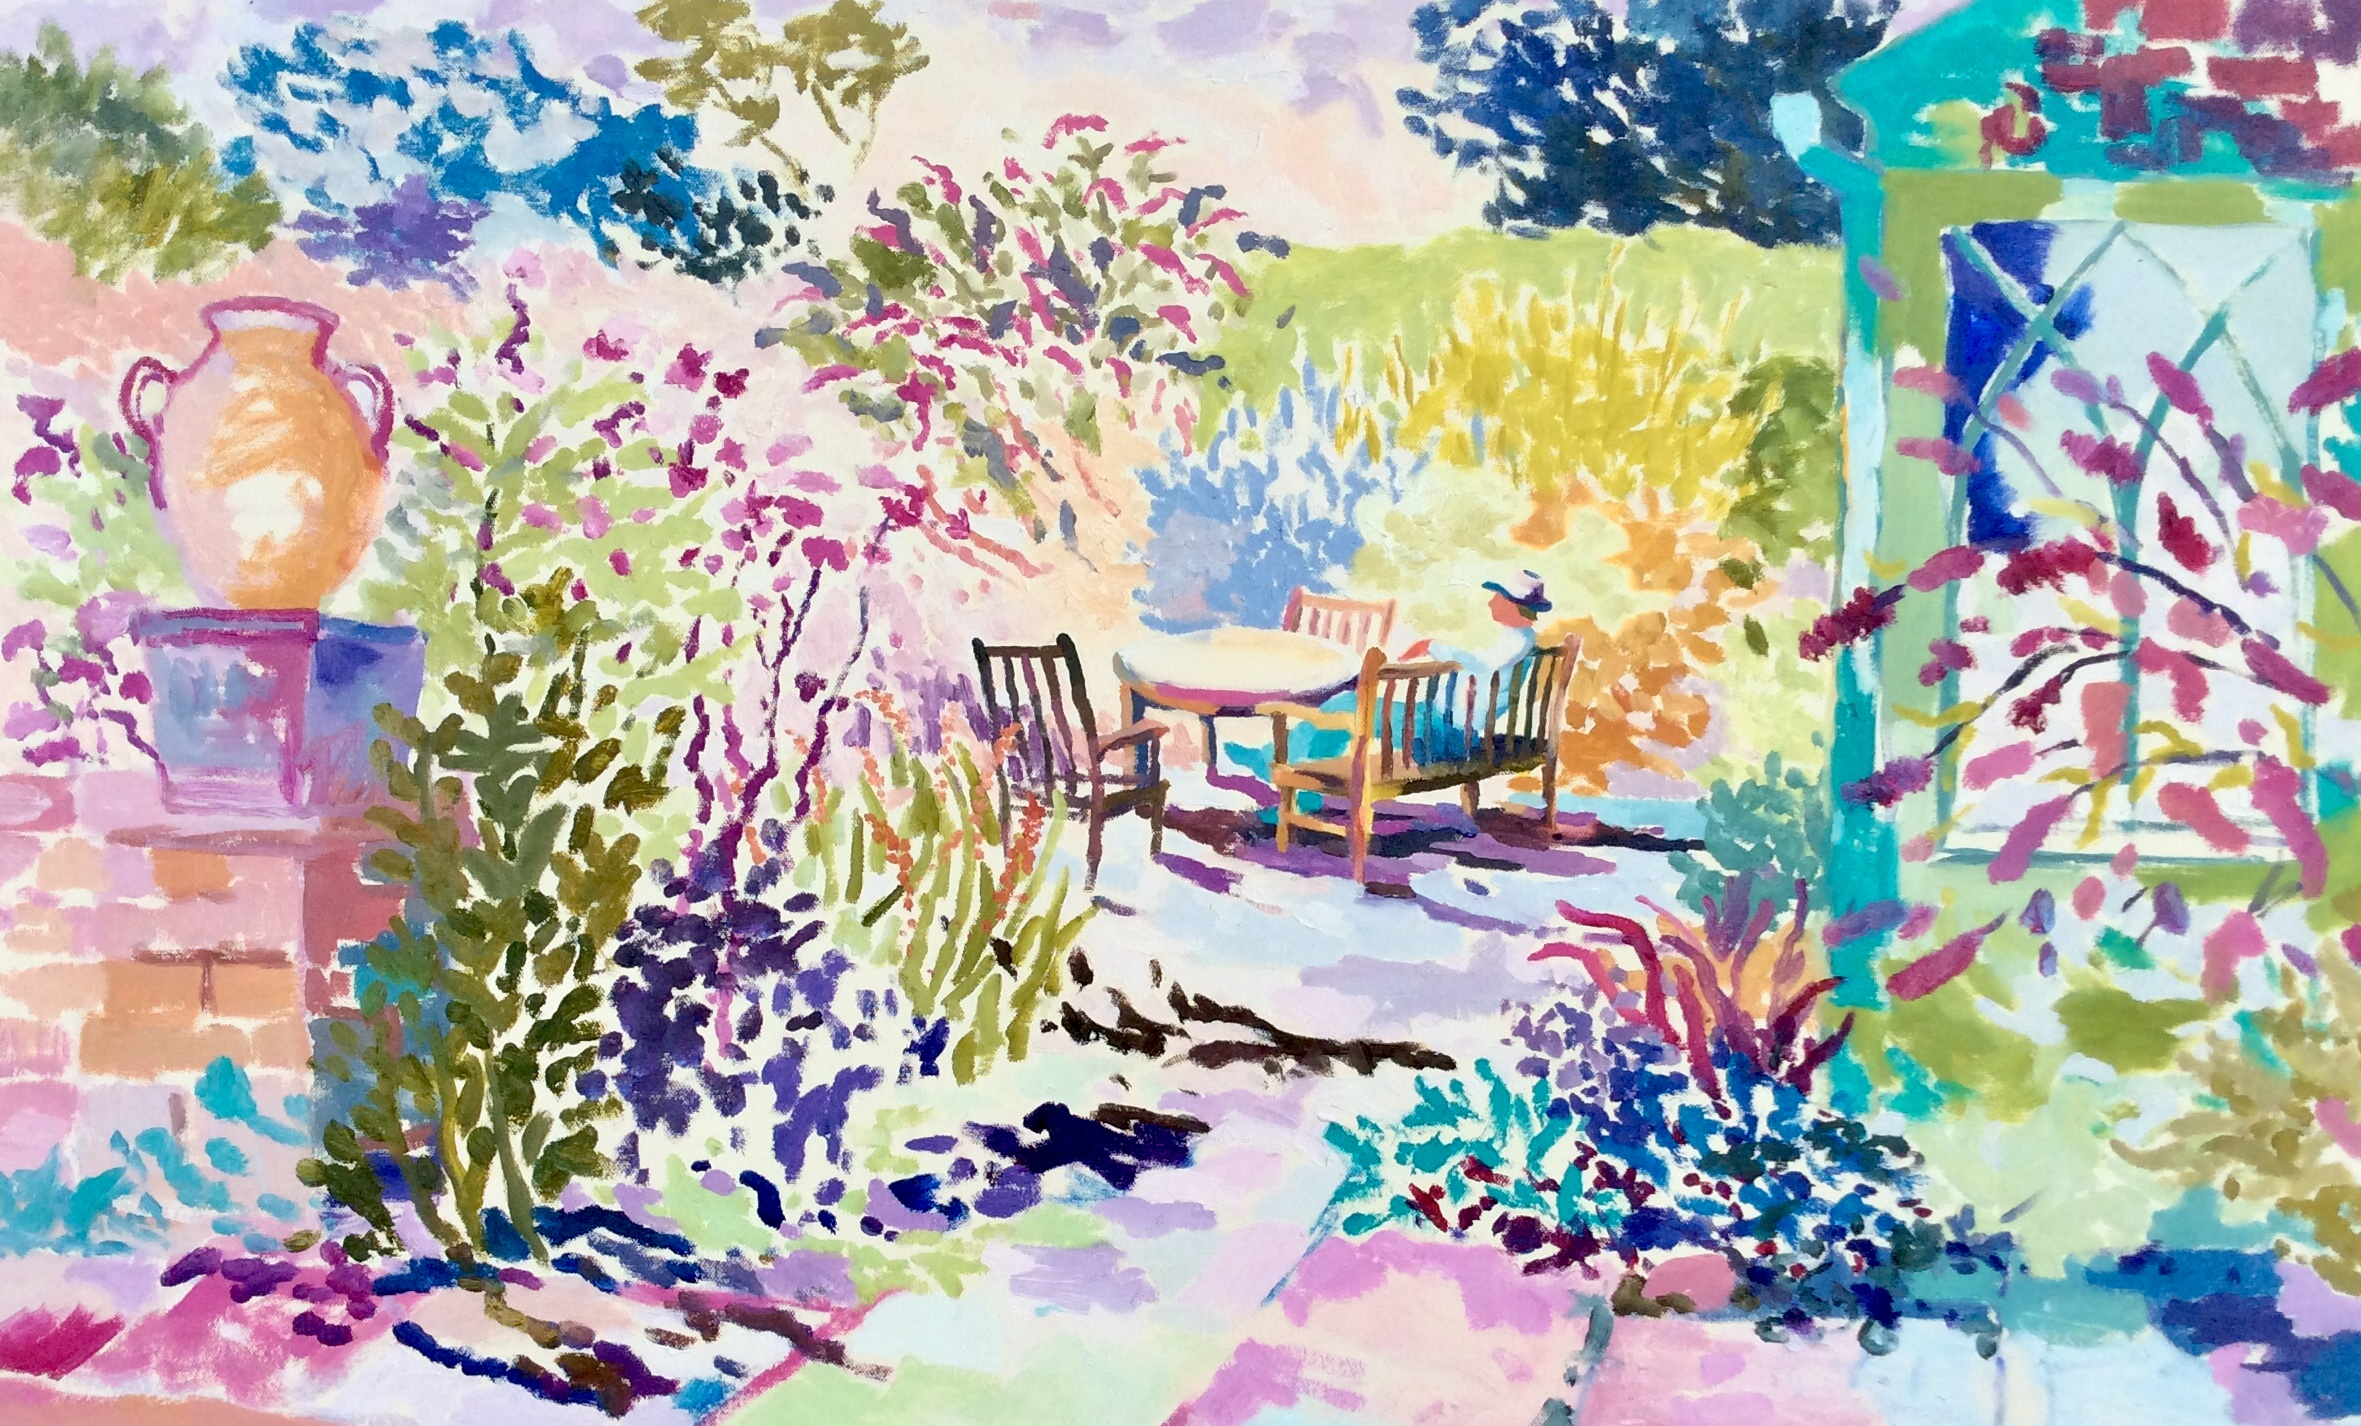 Saturday Afternoon in the Garden. Oil on canvas. 60 x 97 cm